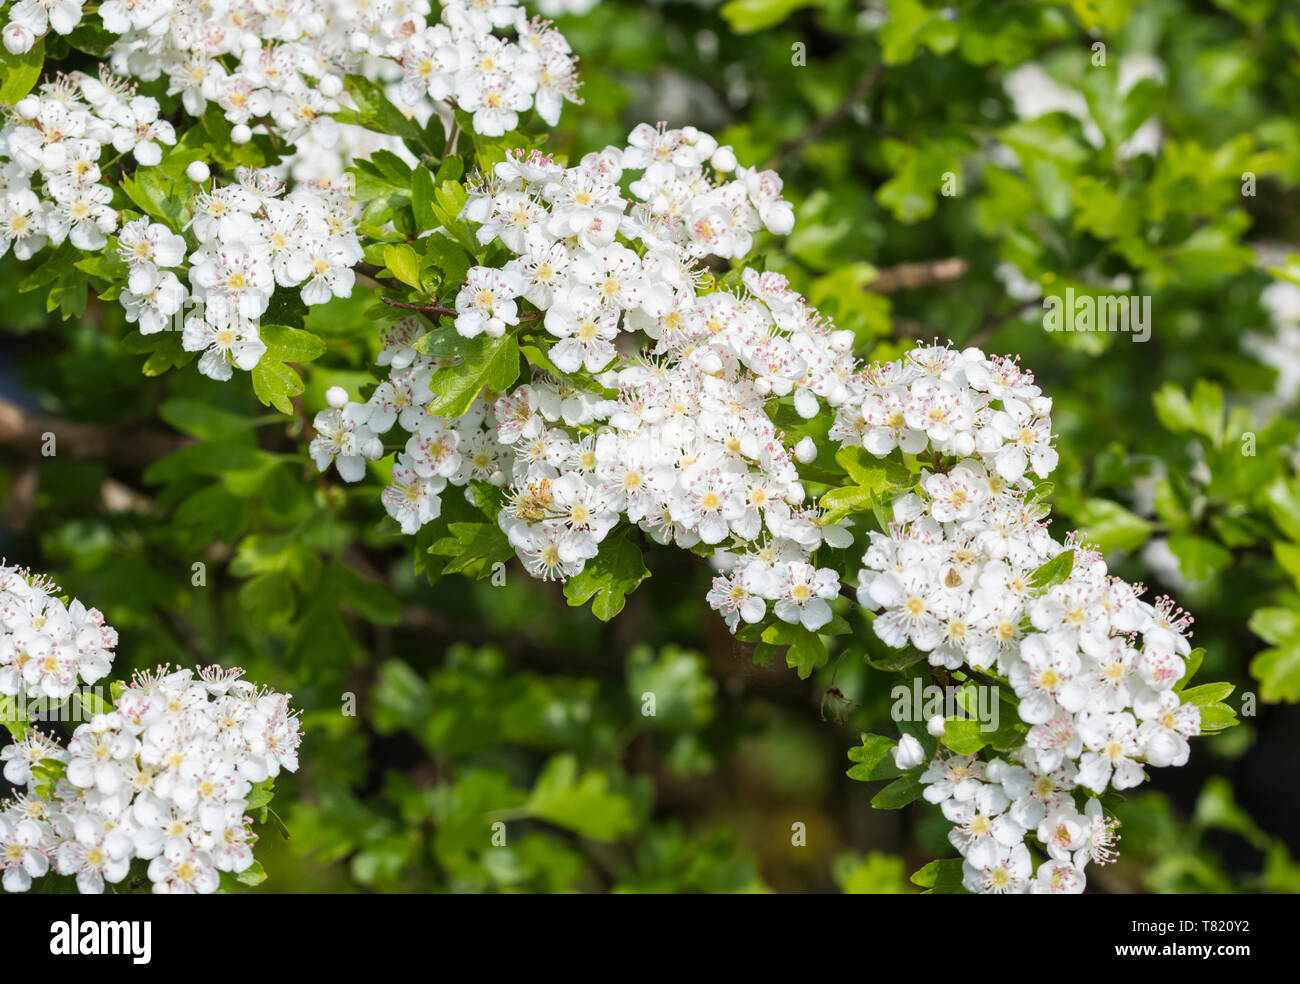 White flowers from Common Hawthorn tree (Crataegus monogyna), AKA Quickthorn, Whitethorn, Hawberry in Spring (May) in West Sussex, UK. - Stock Image